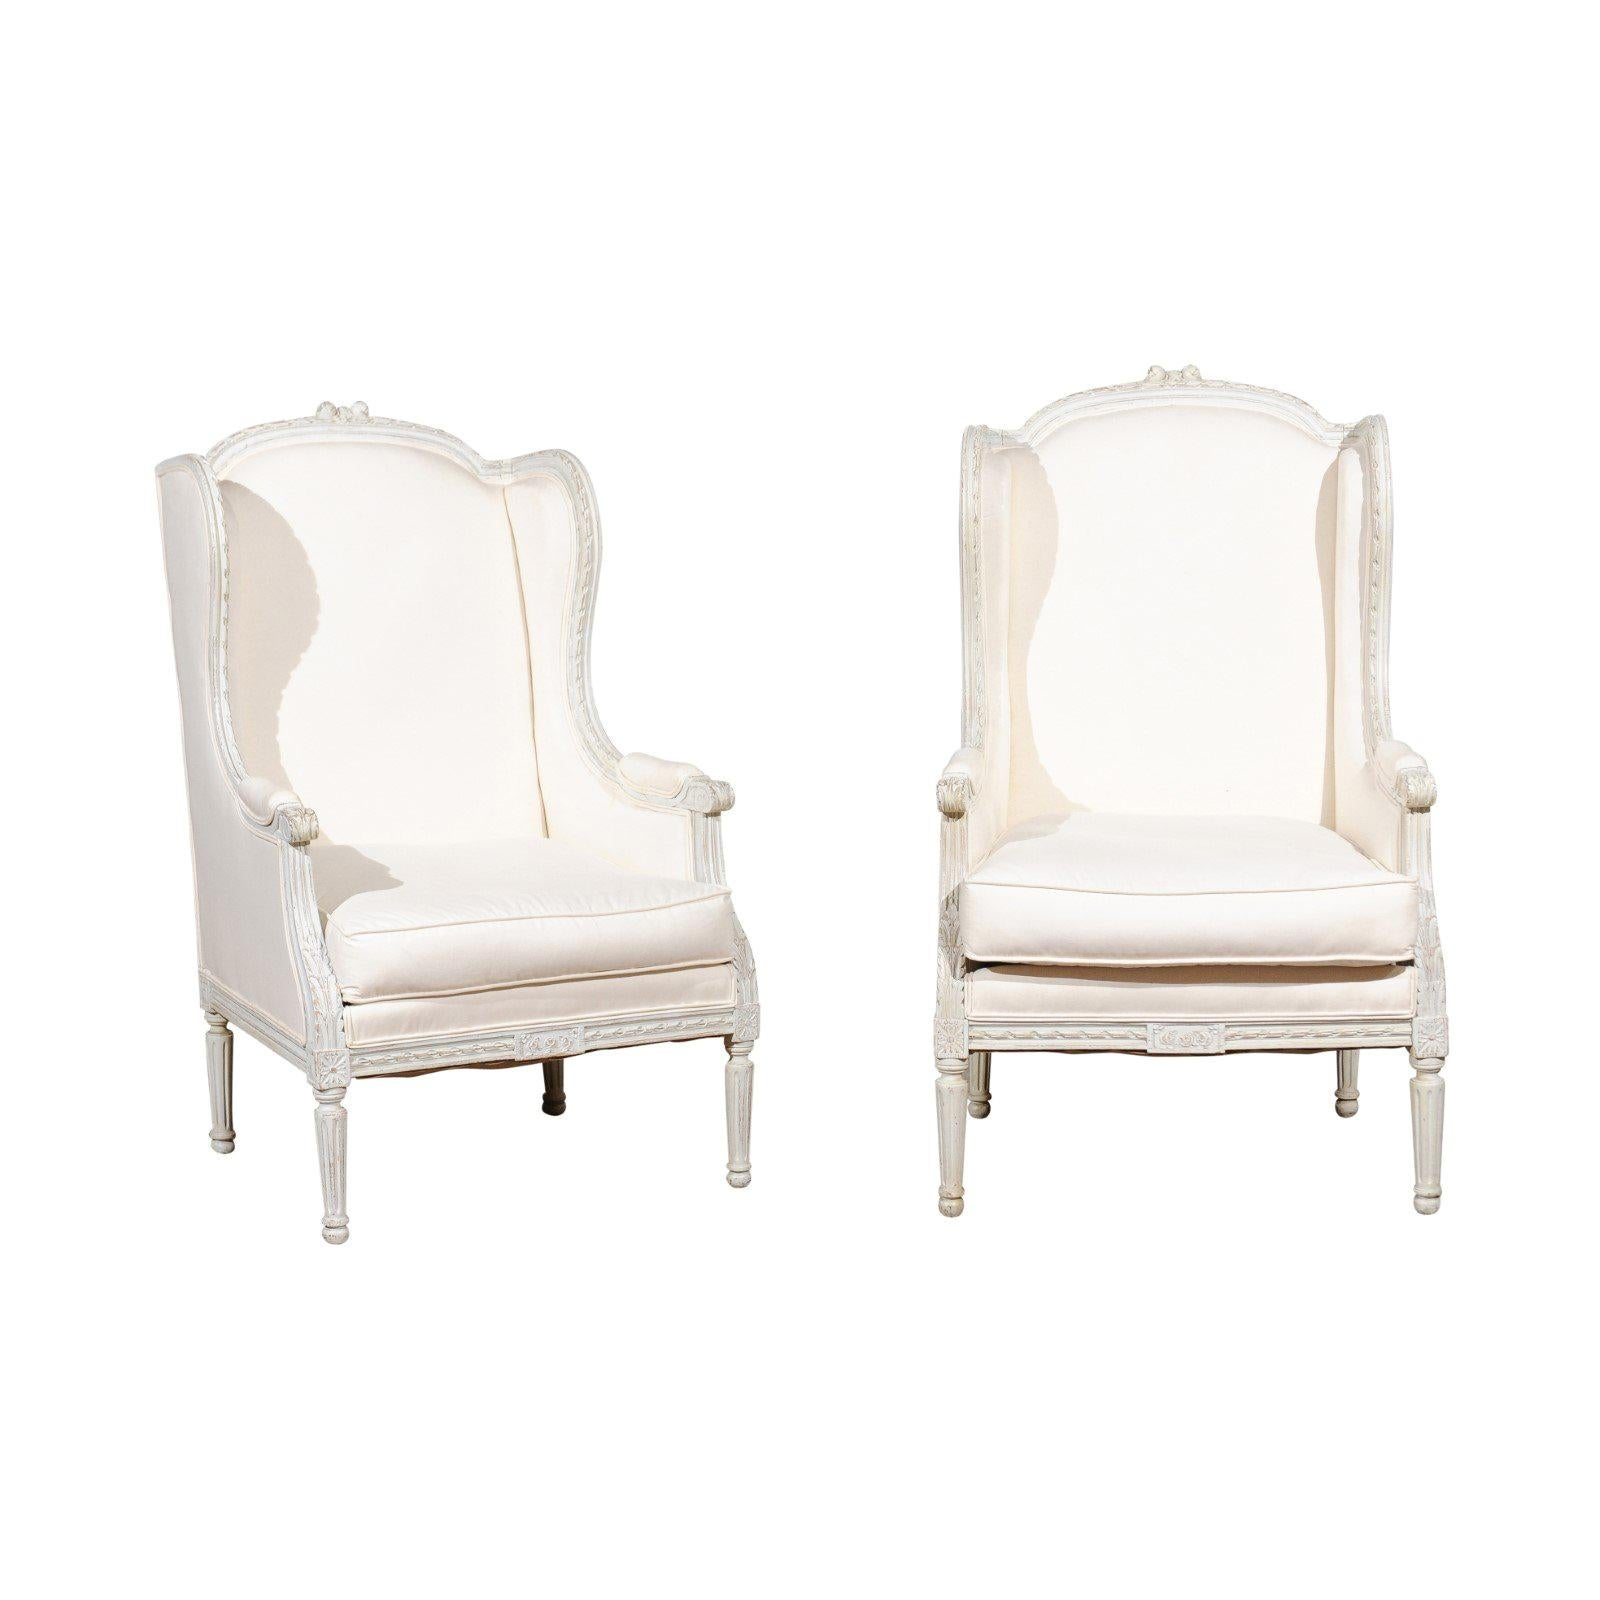 Pair of French 1890s Louis XVI Style Painted Wood Bergère Chairs with Upholstery